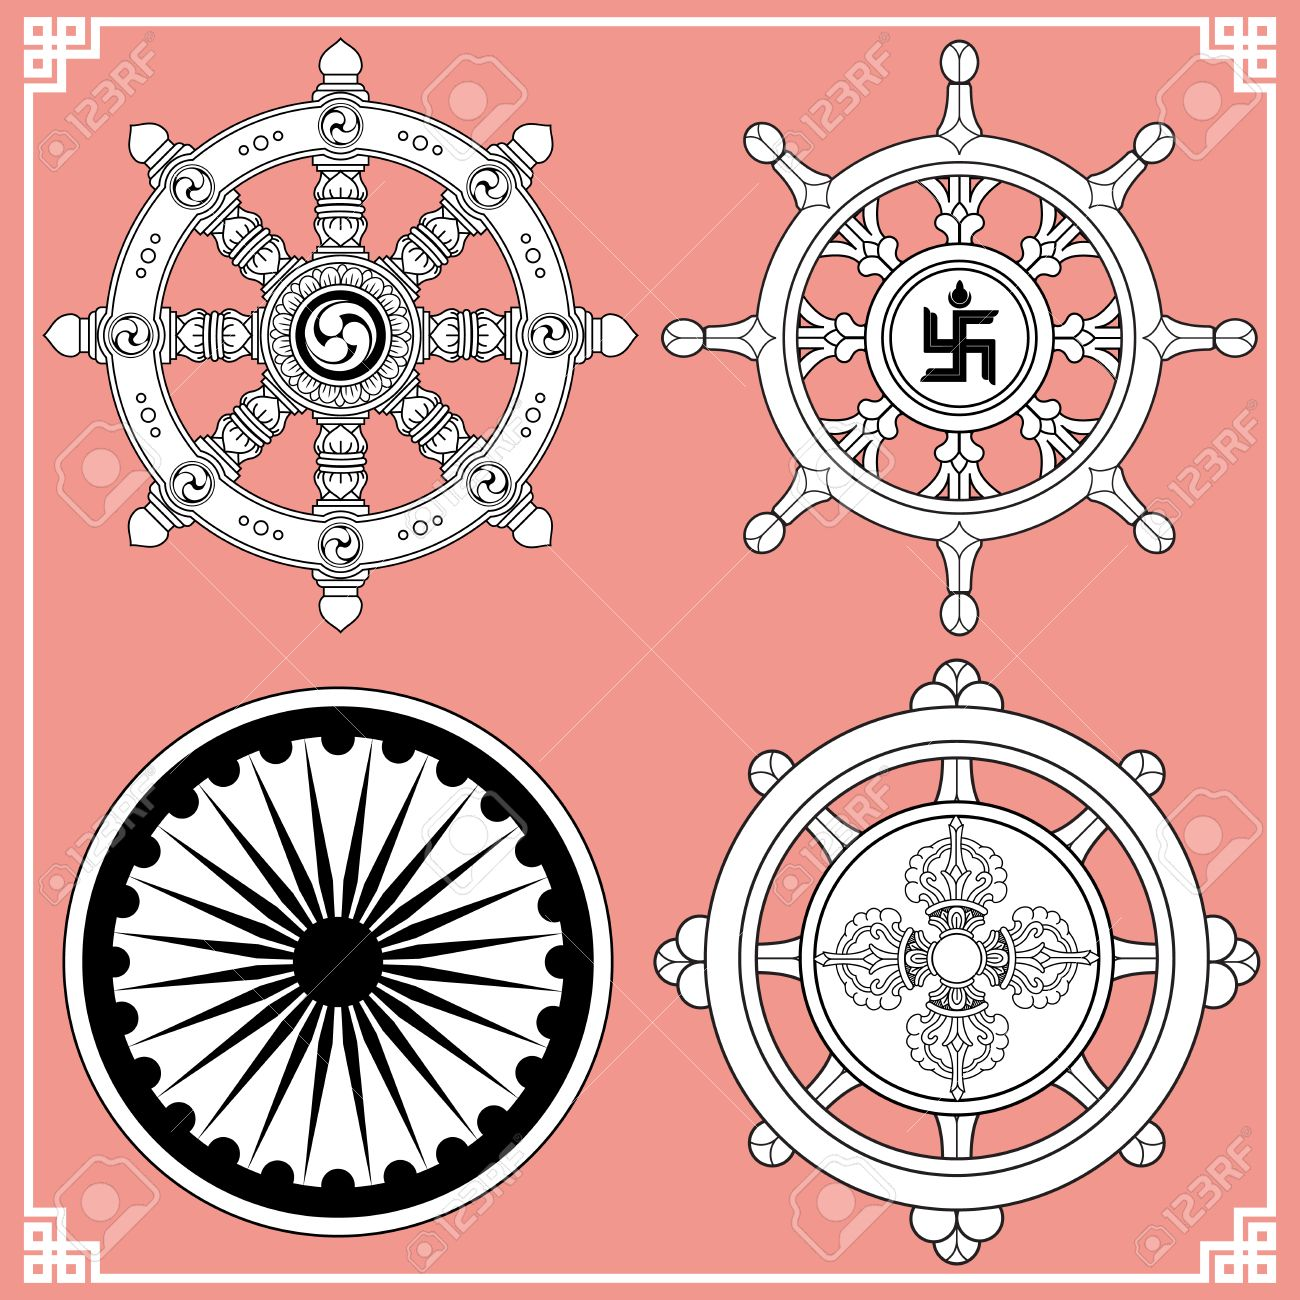 Dharma wheel dharmachakra icons wheel of dharma in black and dharma wheel dharmachakra icons wheel of dharma in black and white design buddhism buycottarizona